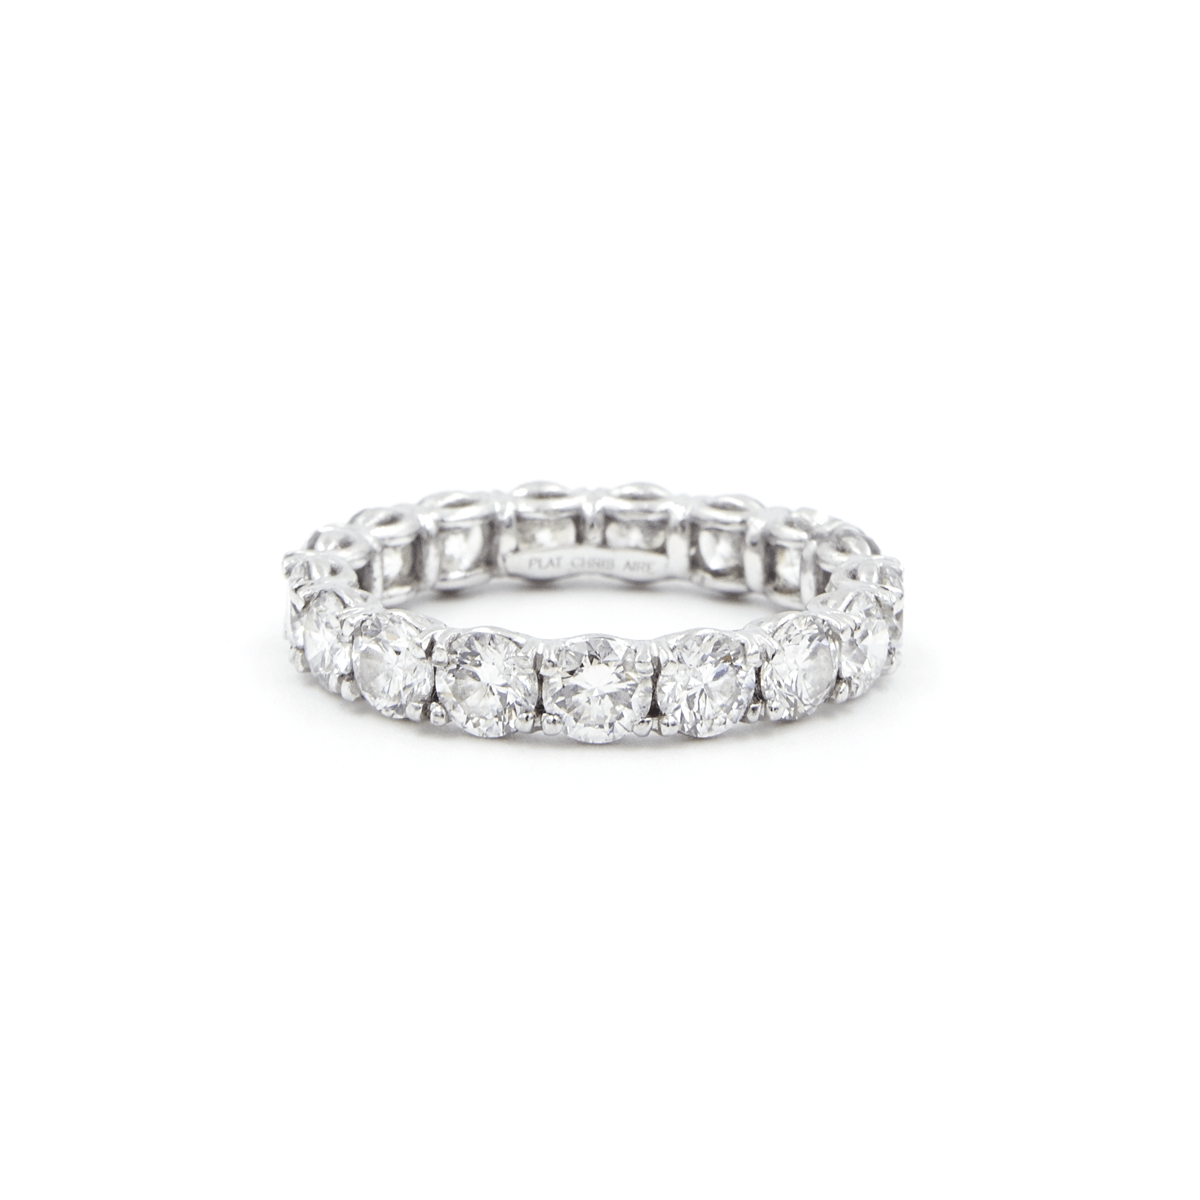 CHRIS AIRE ETERNITY BAND